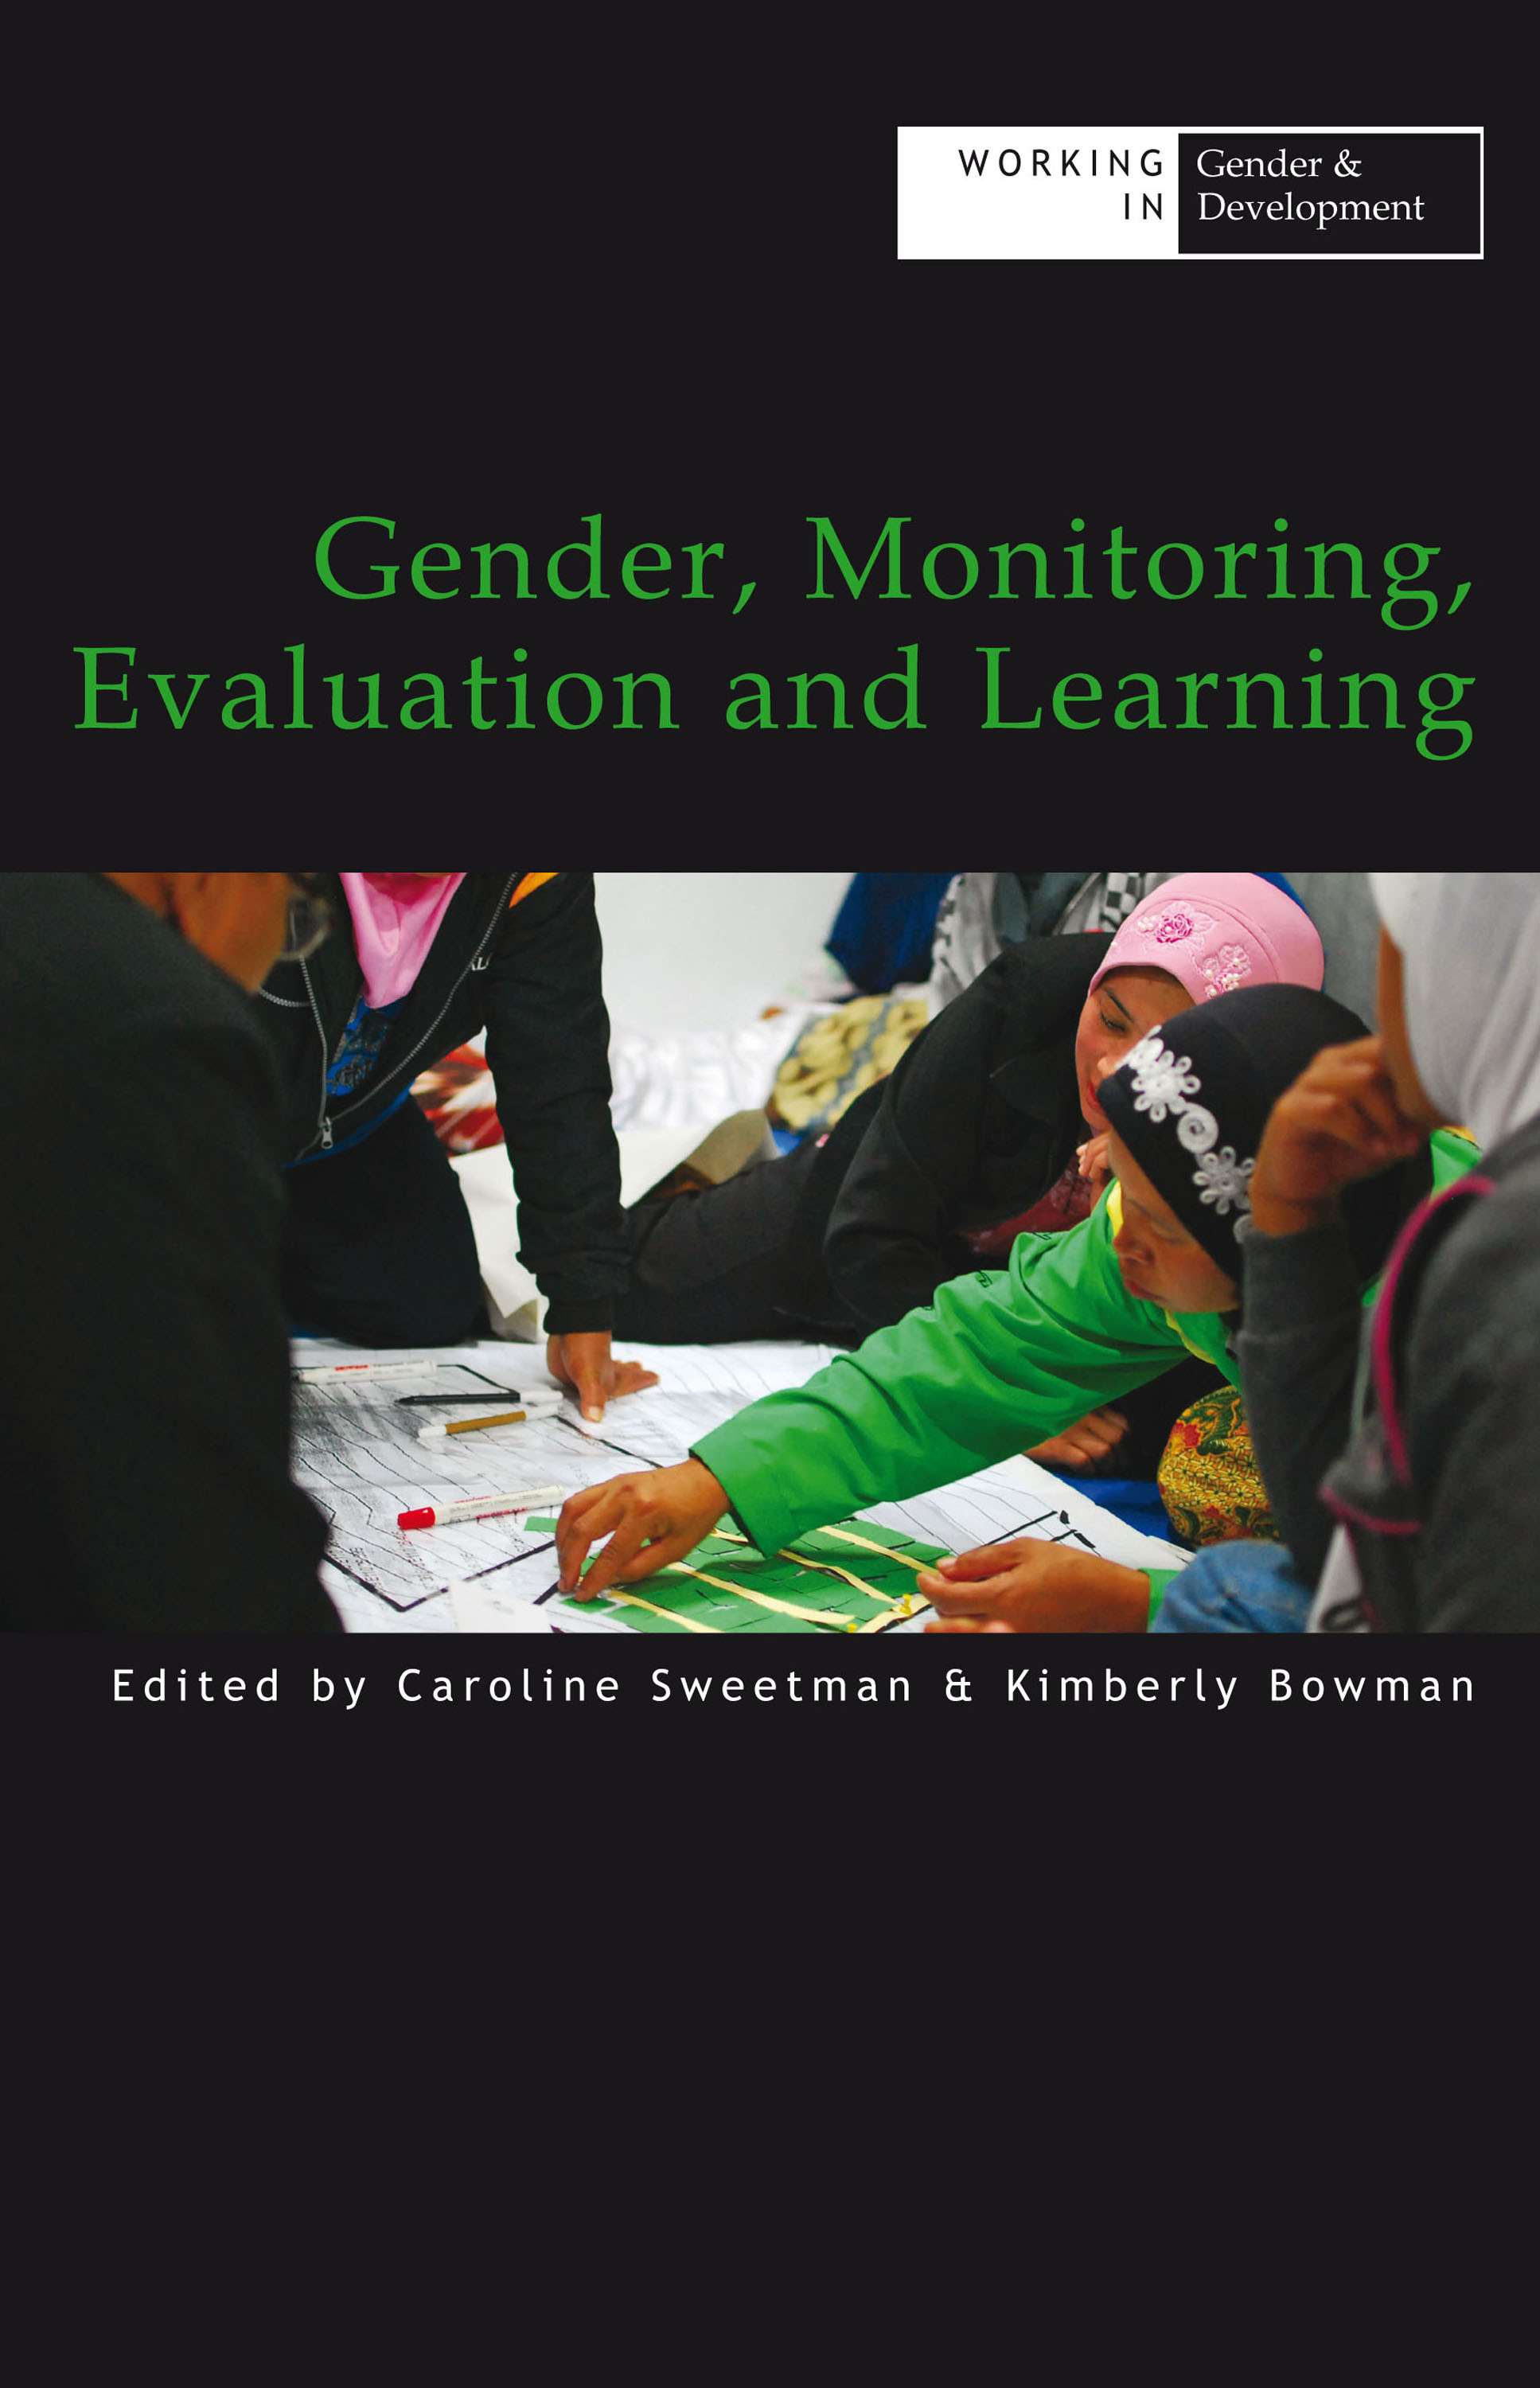 Gender, Monitoring, Evaluation and Learning